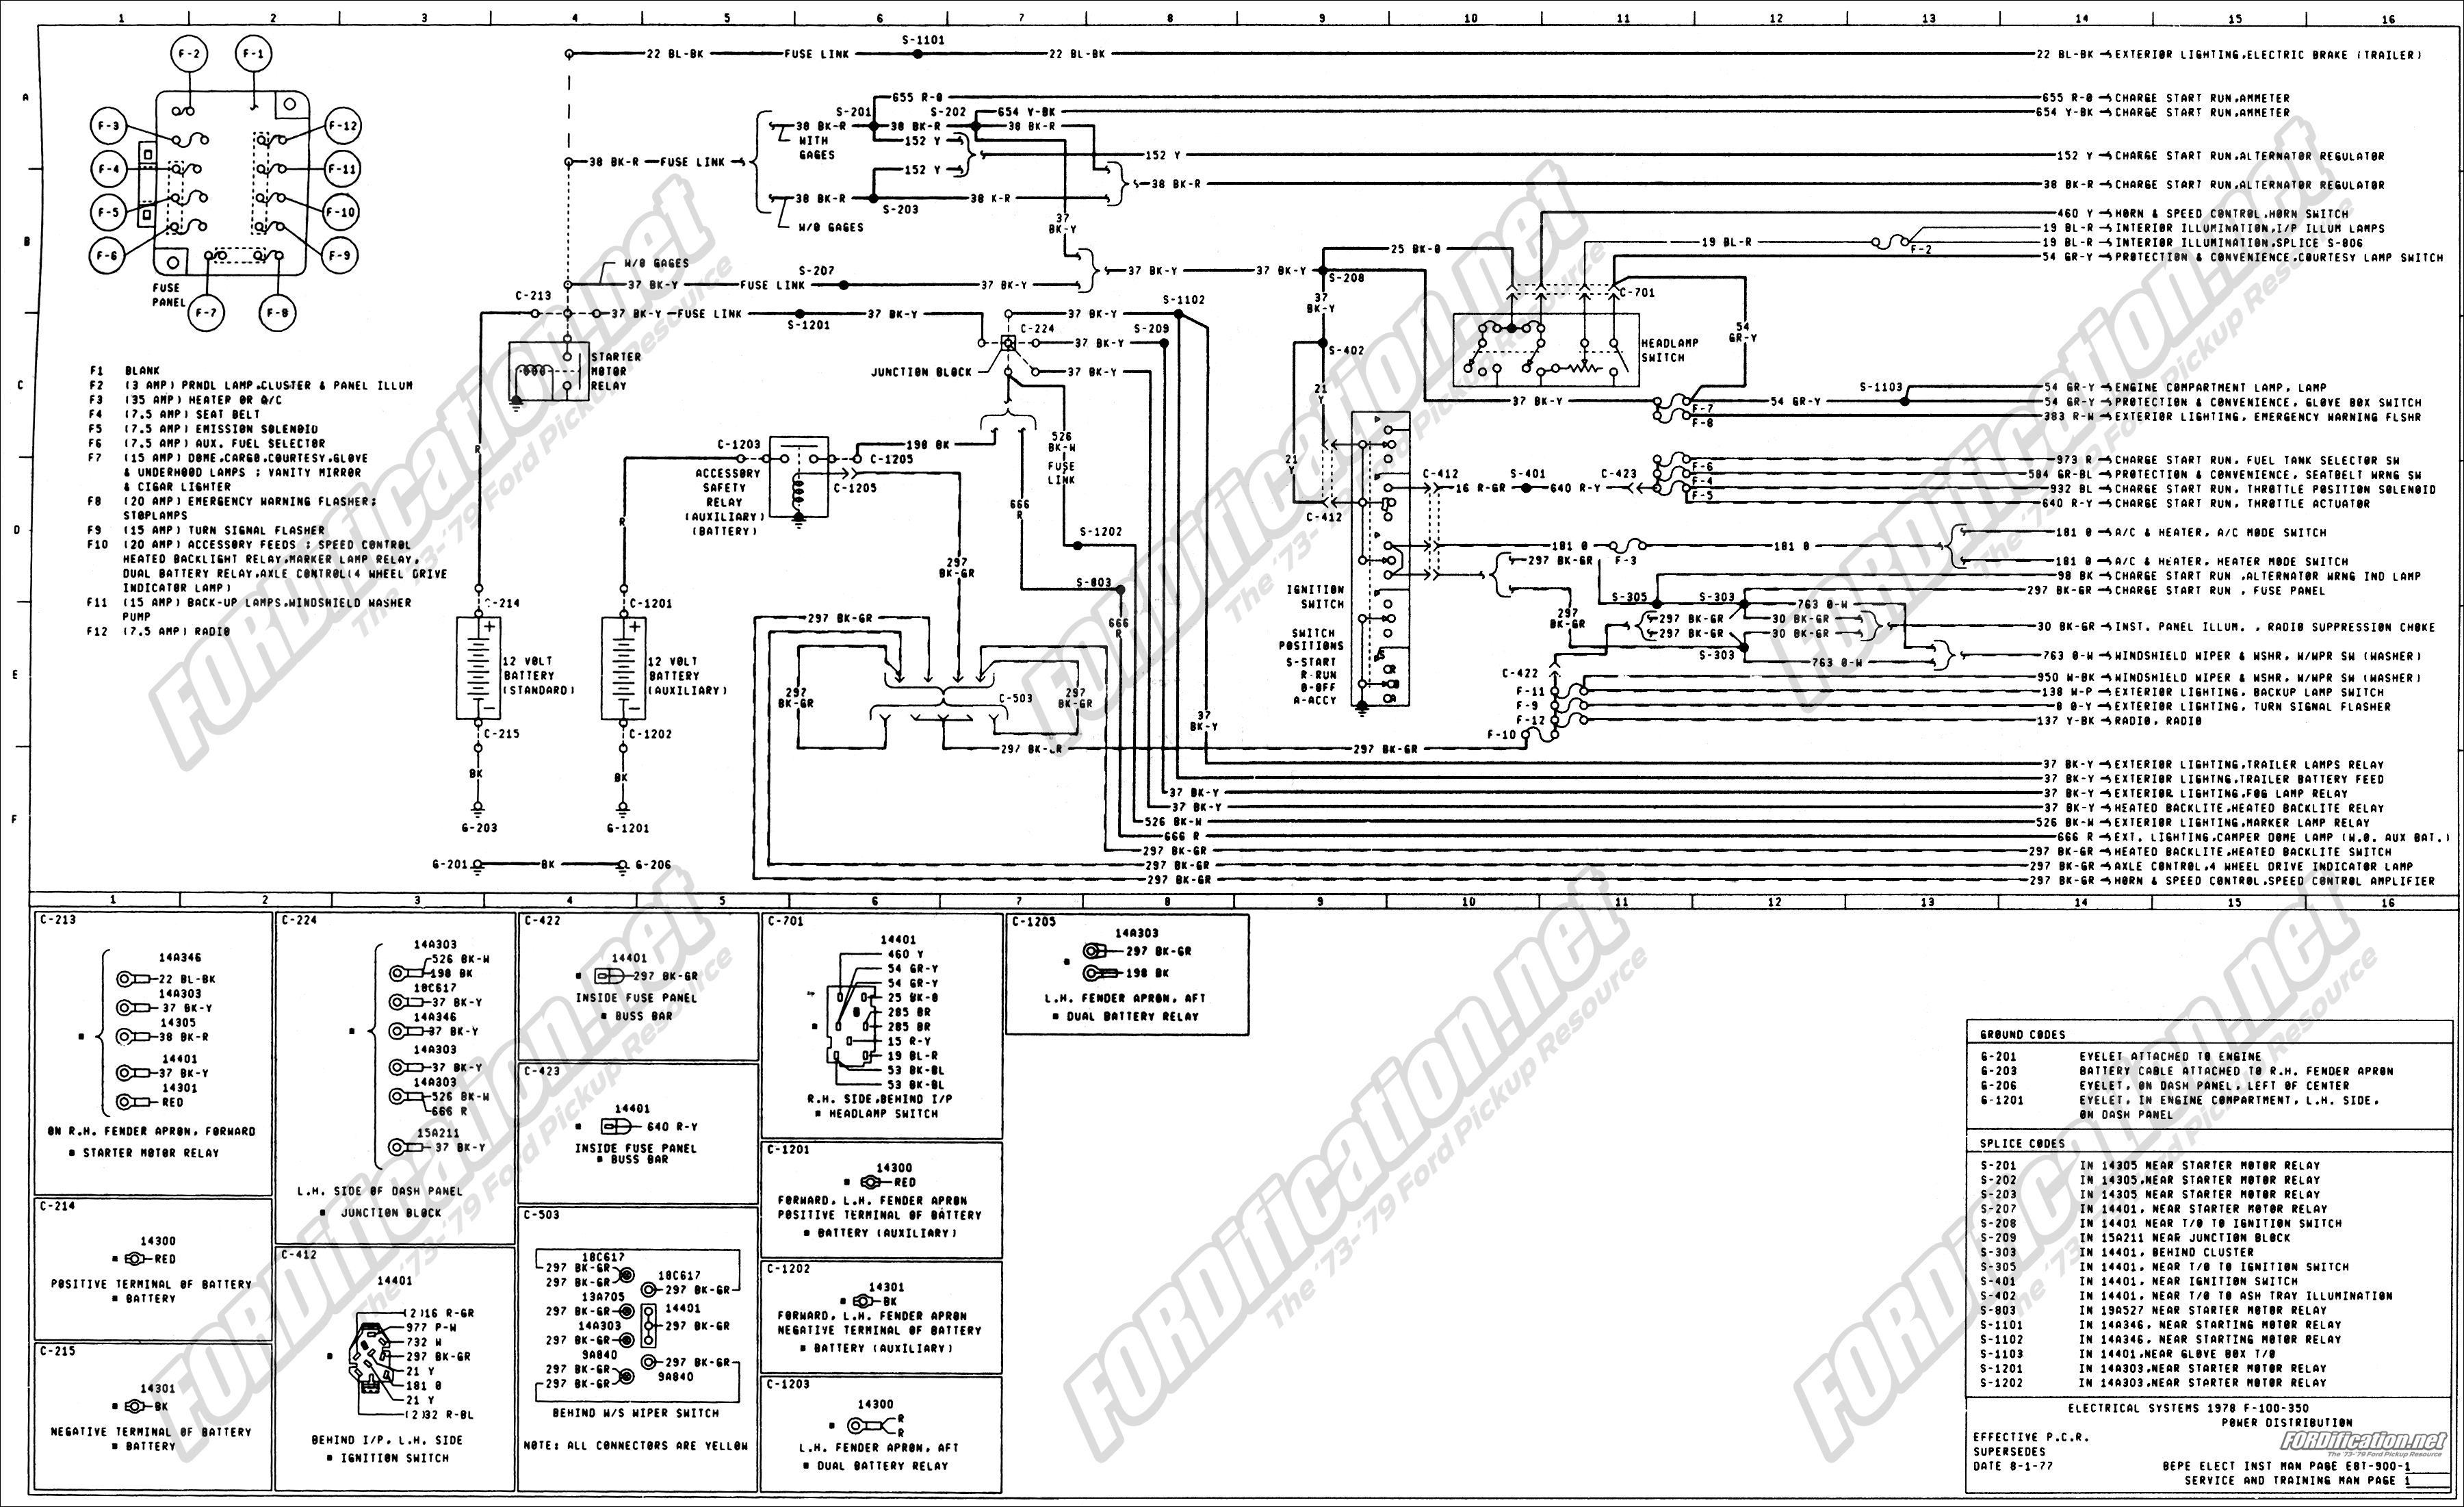 Fuse Box Diagram For 1998 F 150 Pickup Ford Transit Custom Location 37 Wiring Images 78master 2of10 Block 1976 Truck Enthusiasts Forums At Cita